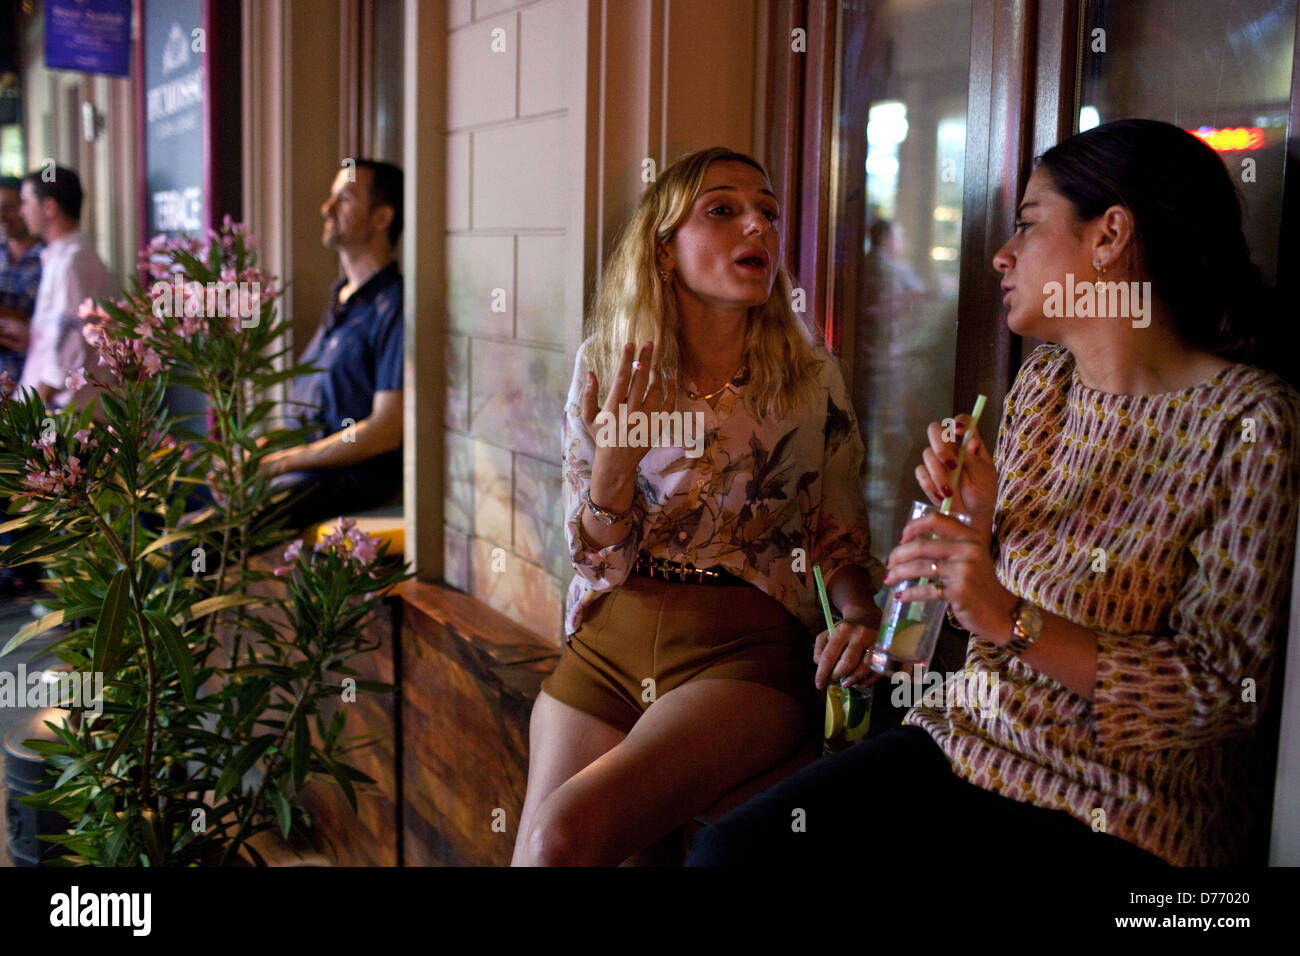 Women talking, Nightlife in Beyoglu, Istanbul, Turkey - Stock Image